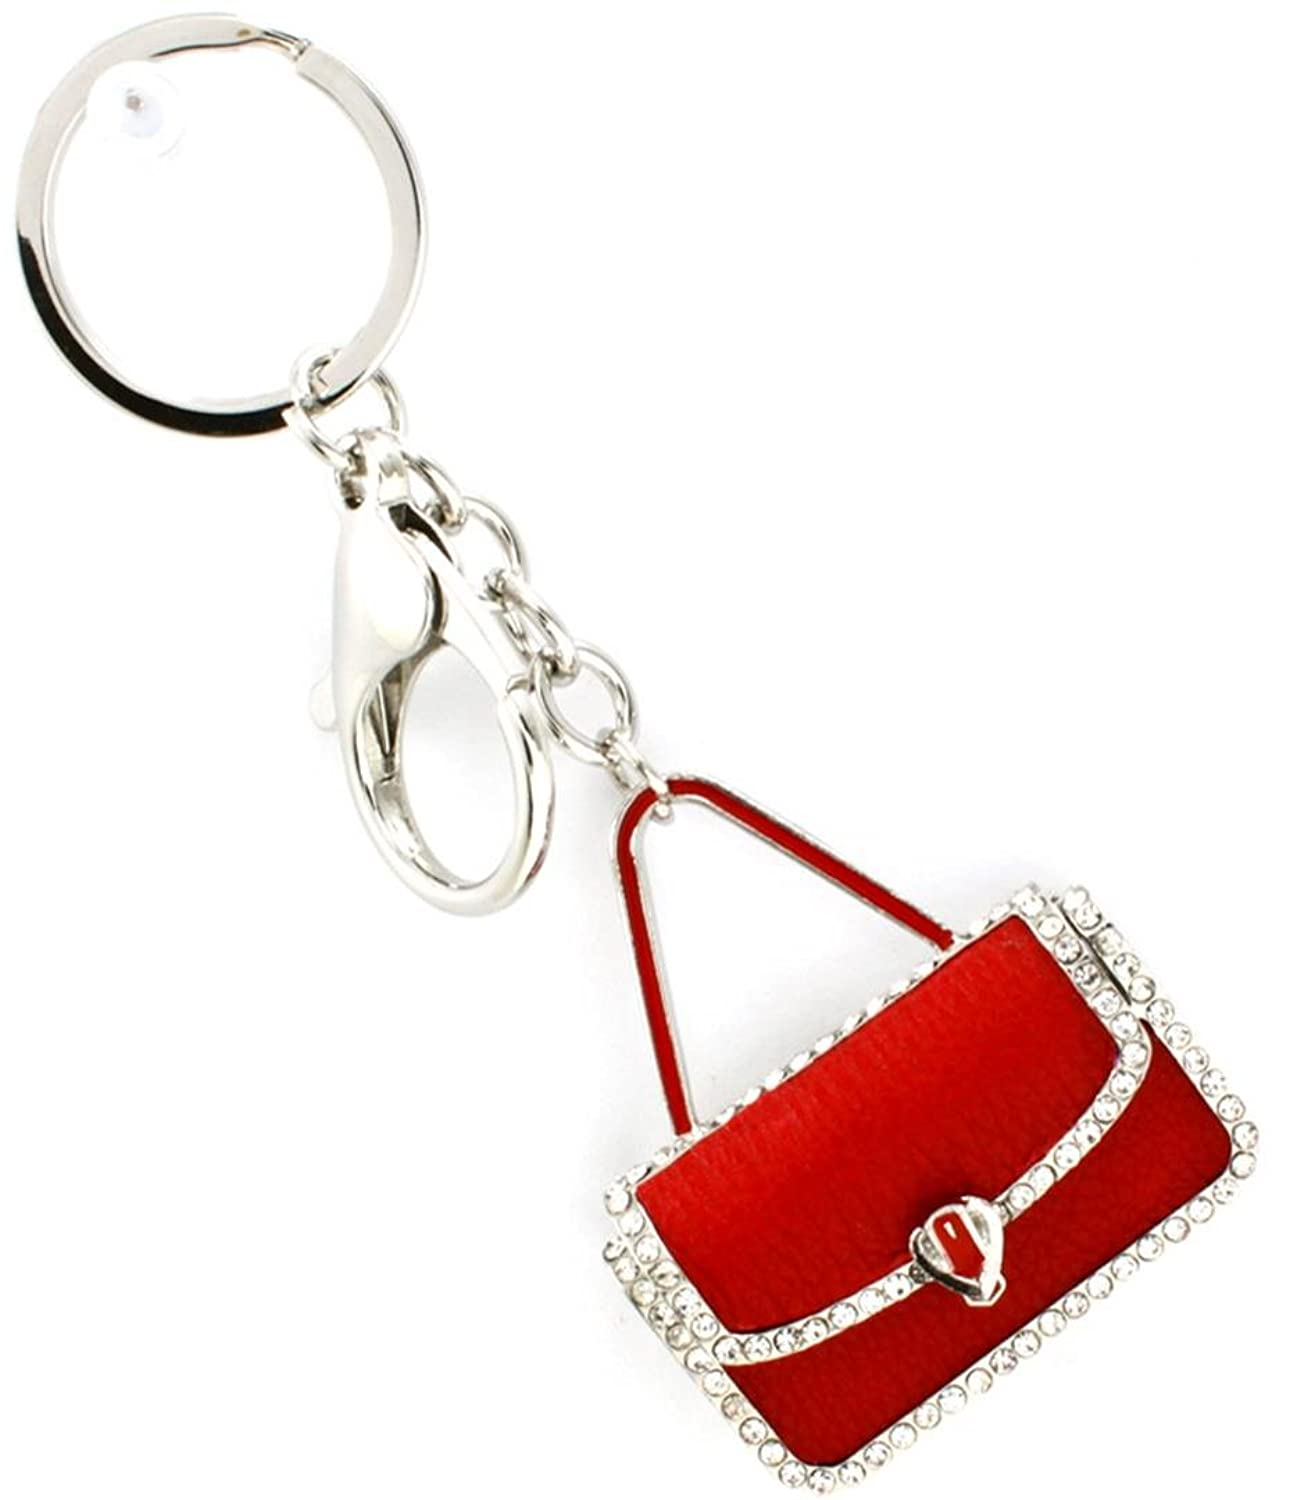 Red Handbag Key Chain D10 Clear Red Crystal Clip